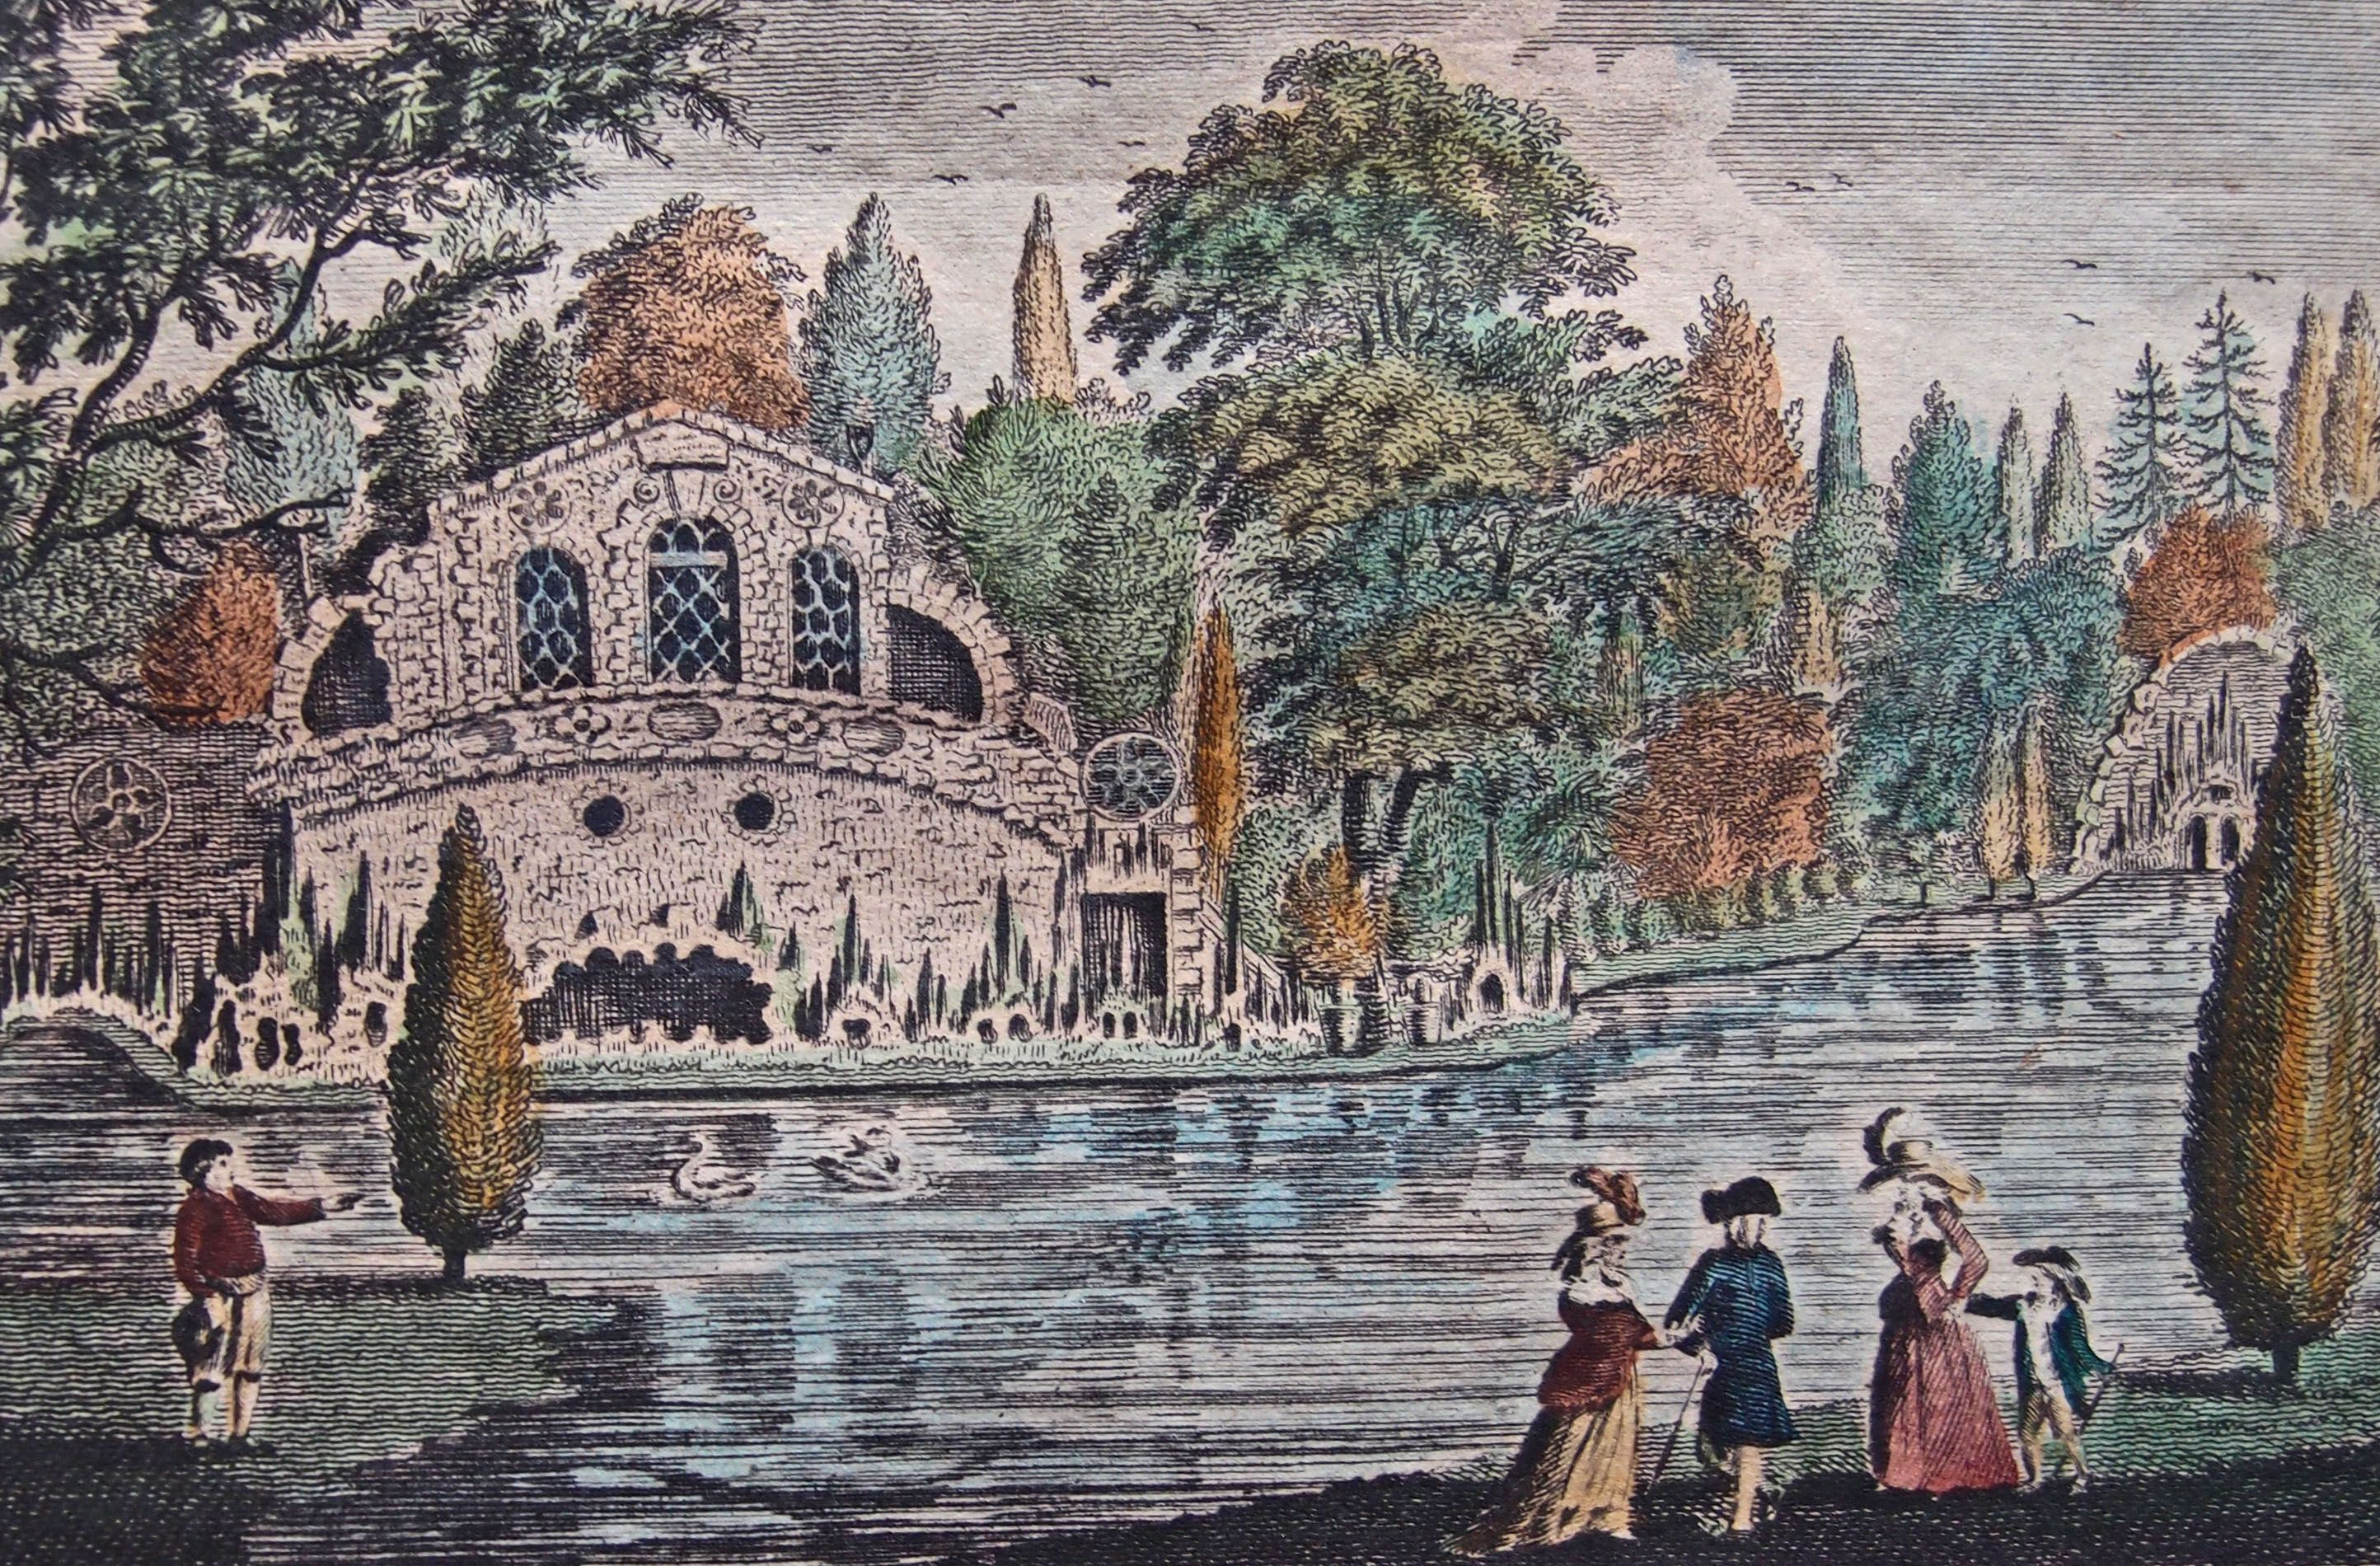 Oatlands grotto Weybridge Surrey famous in its heyday in mid 18th century blown up by its owners in 1948 when the house was a hotel